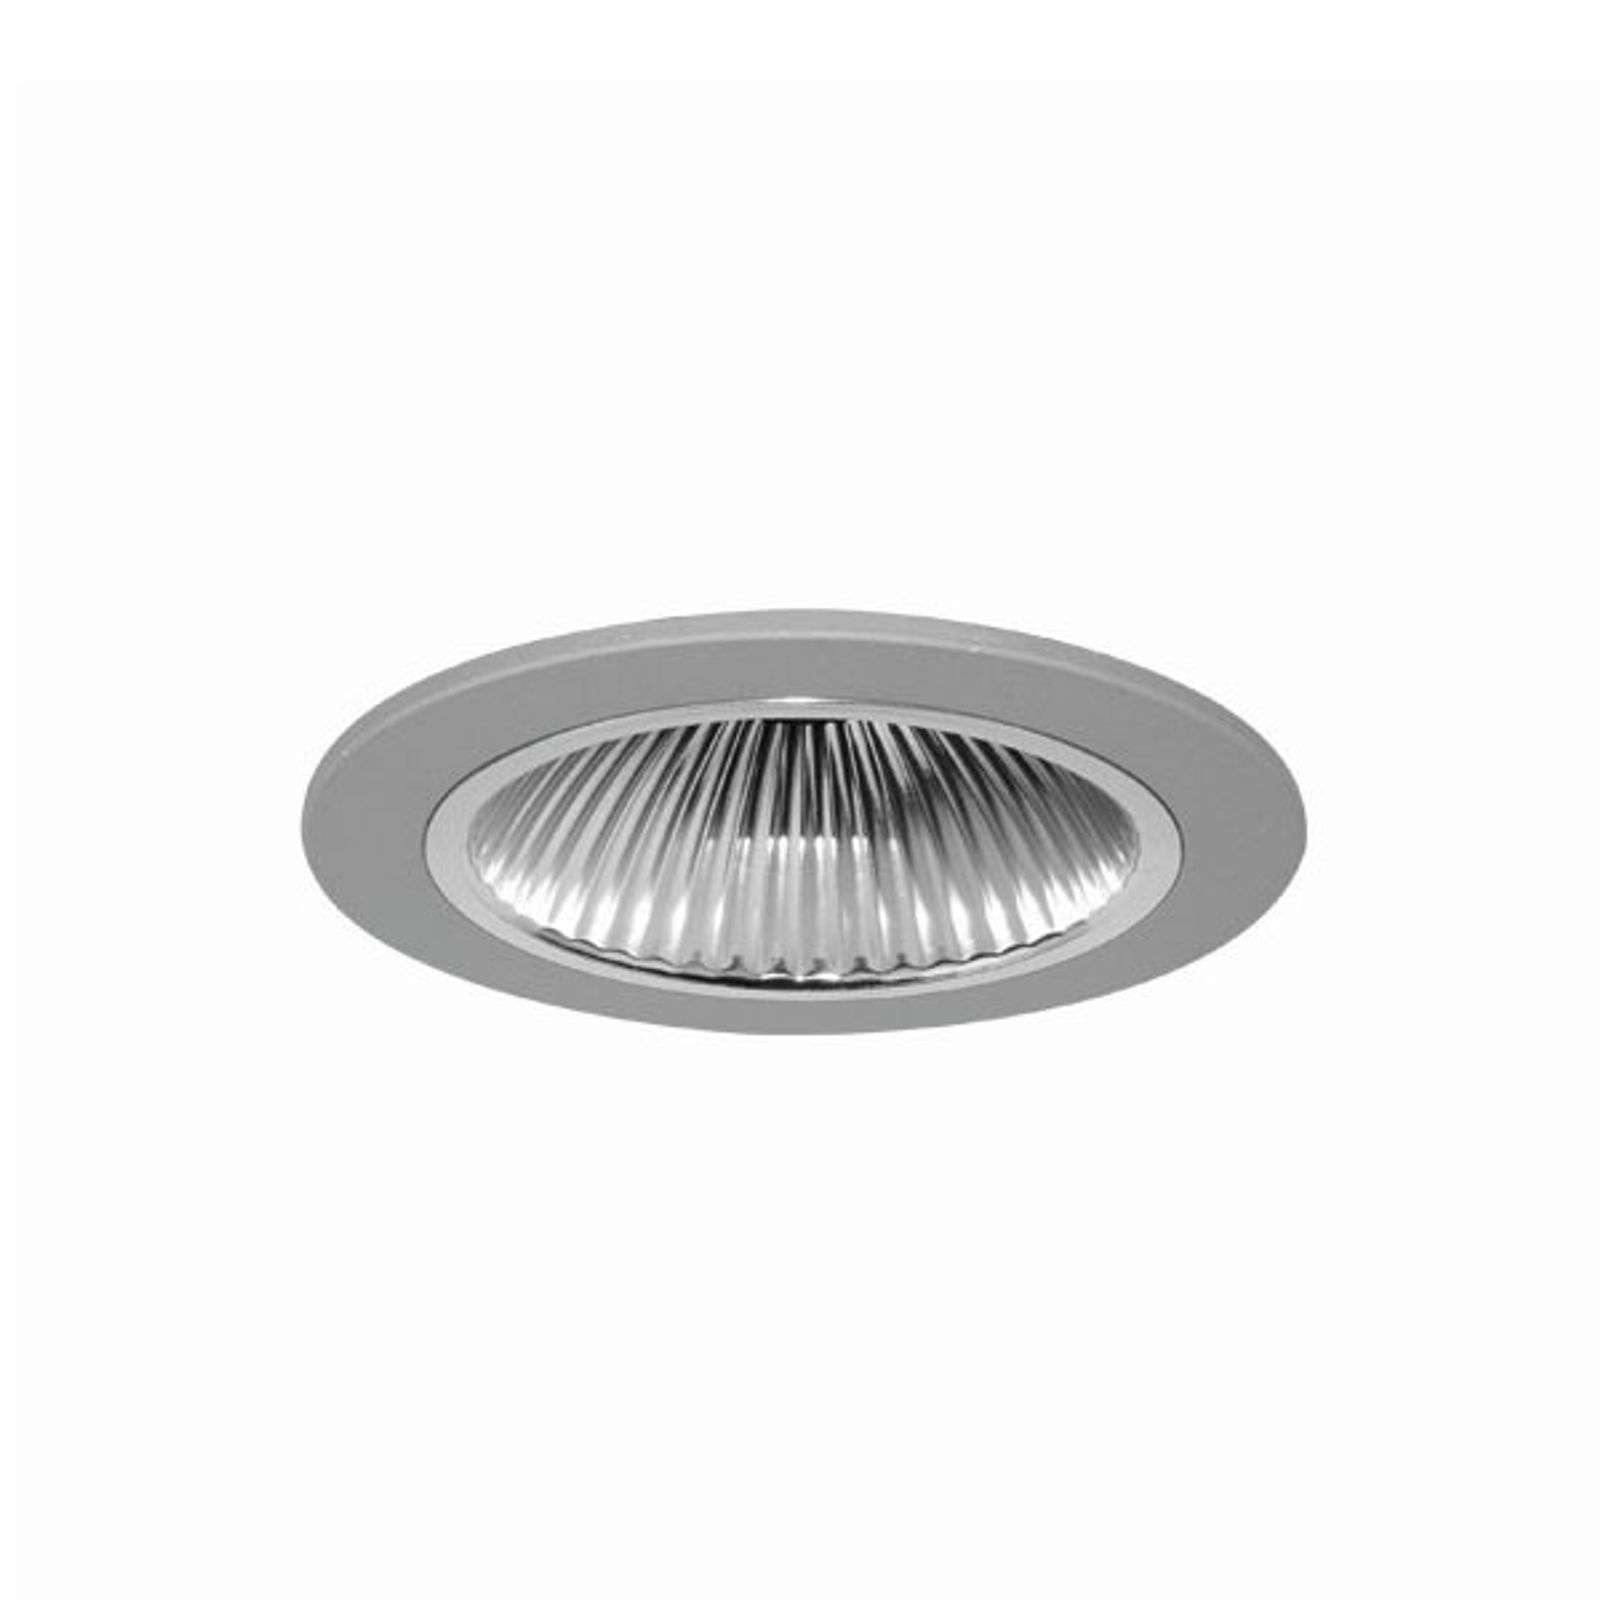 Spot encastrable LED CSA 40 Flat 35° 14 W 1 410 lm